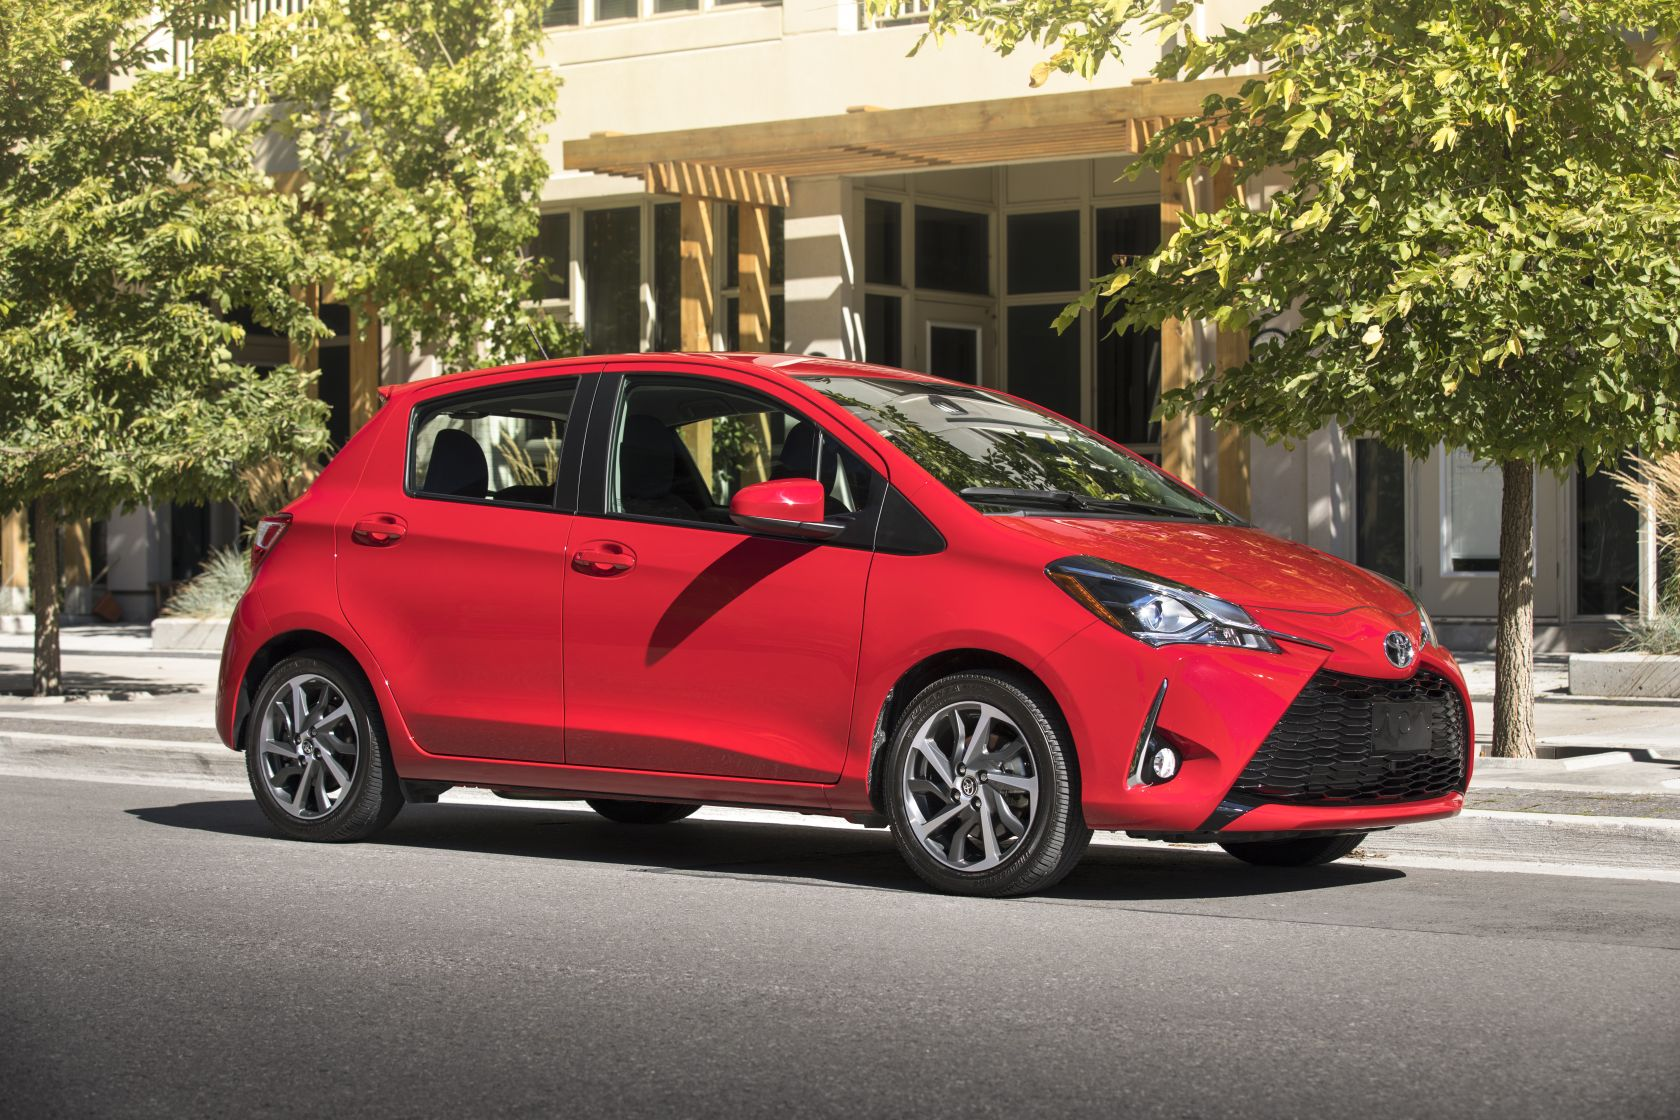 2018 toyota yaris test drive and review specifications fuel economy pricing. Black Bedroom Furniture Sets. Home Design Ideas